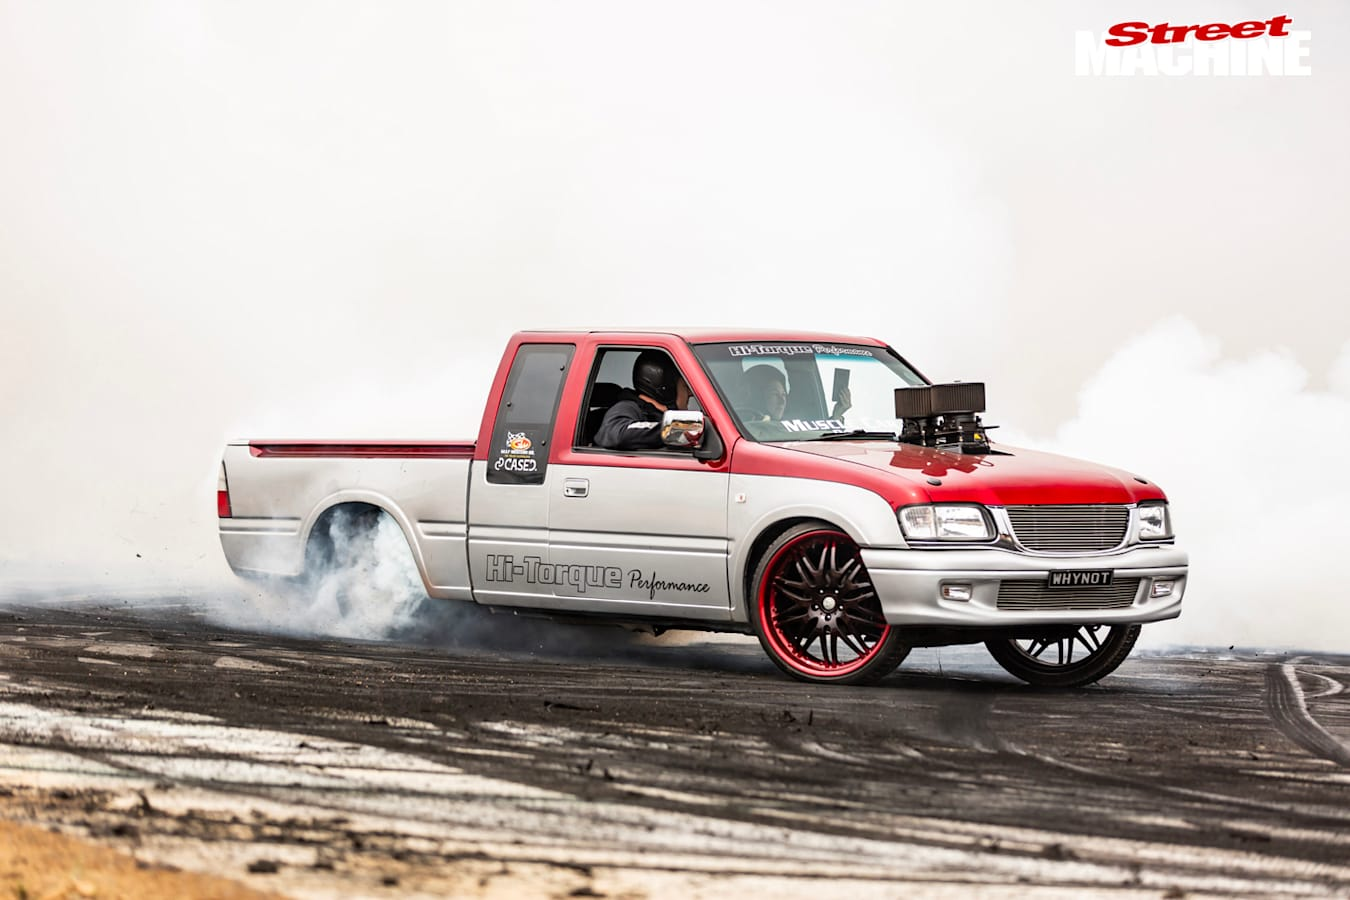 WHYNOT burnout ute